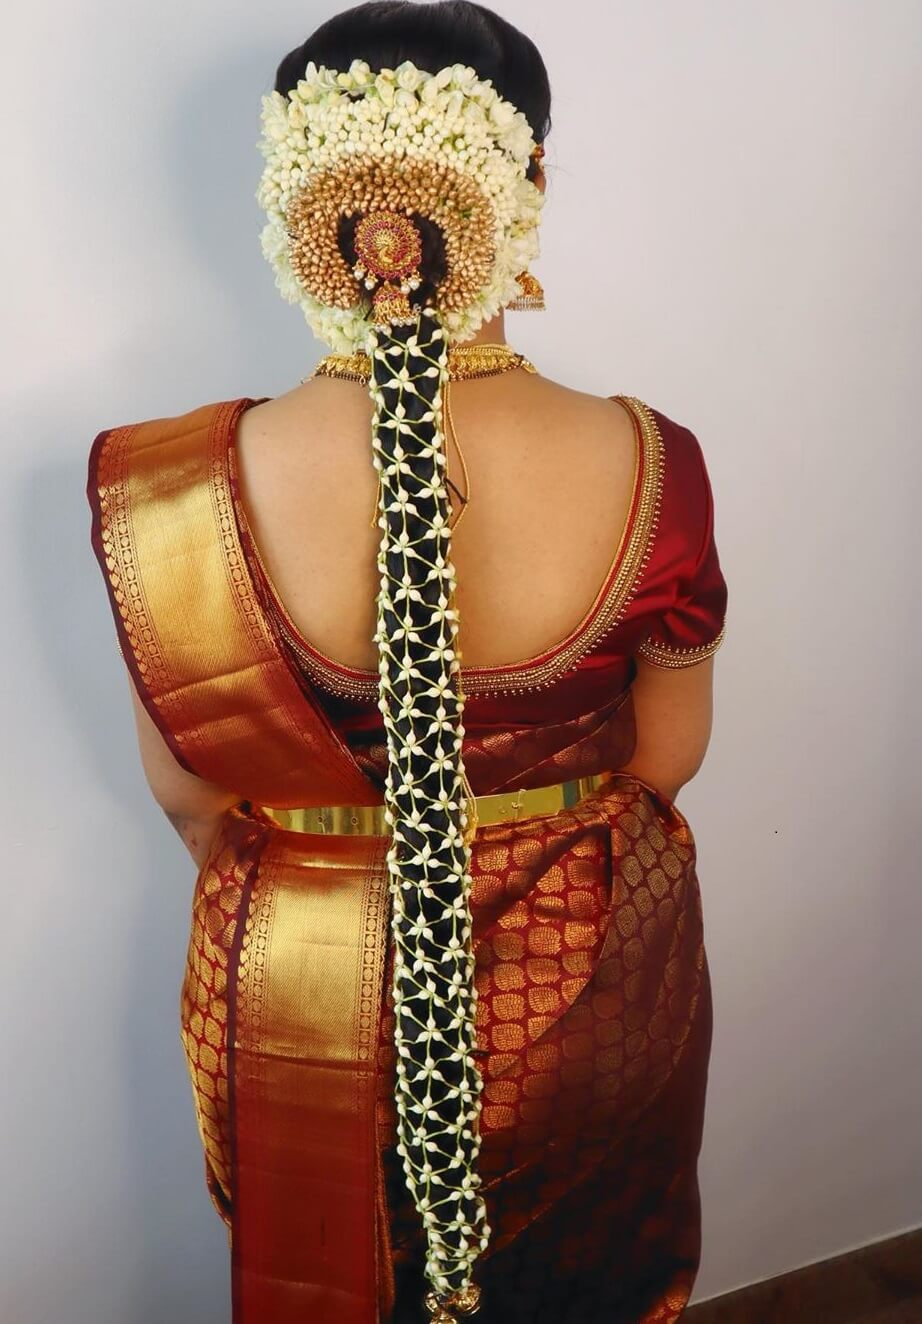 Traditional South Indian Bridal Hairstyle With Net Vein And Stone Cover